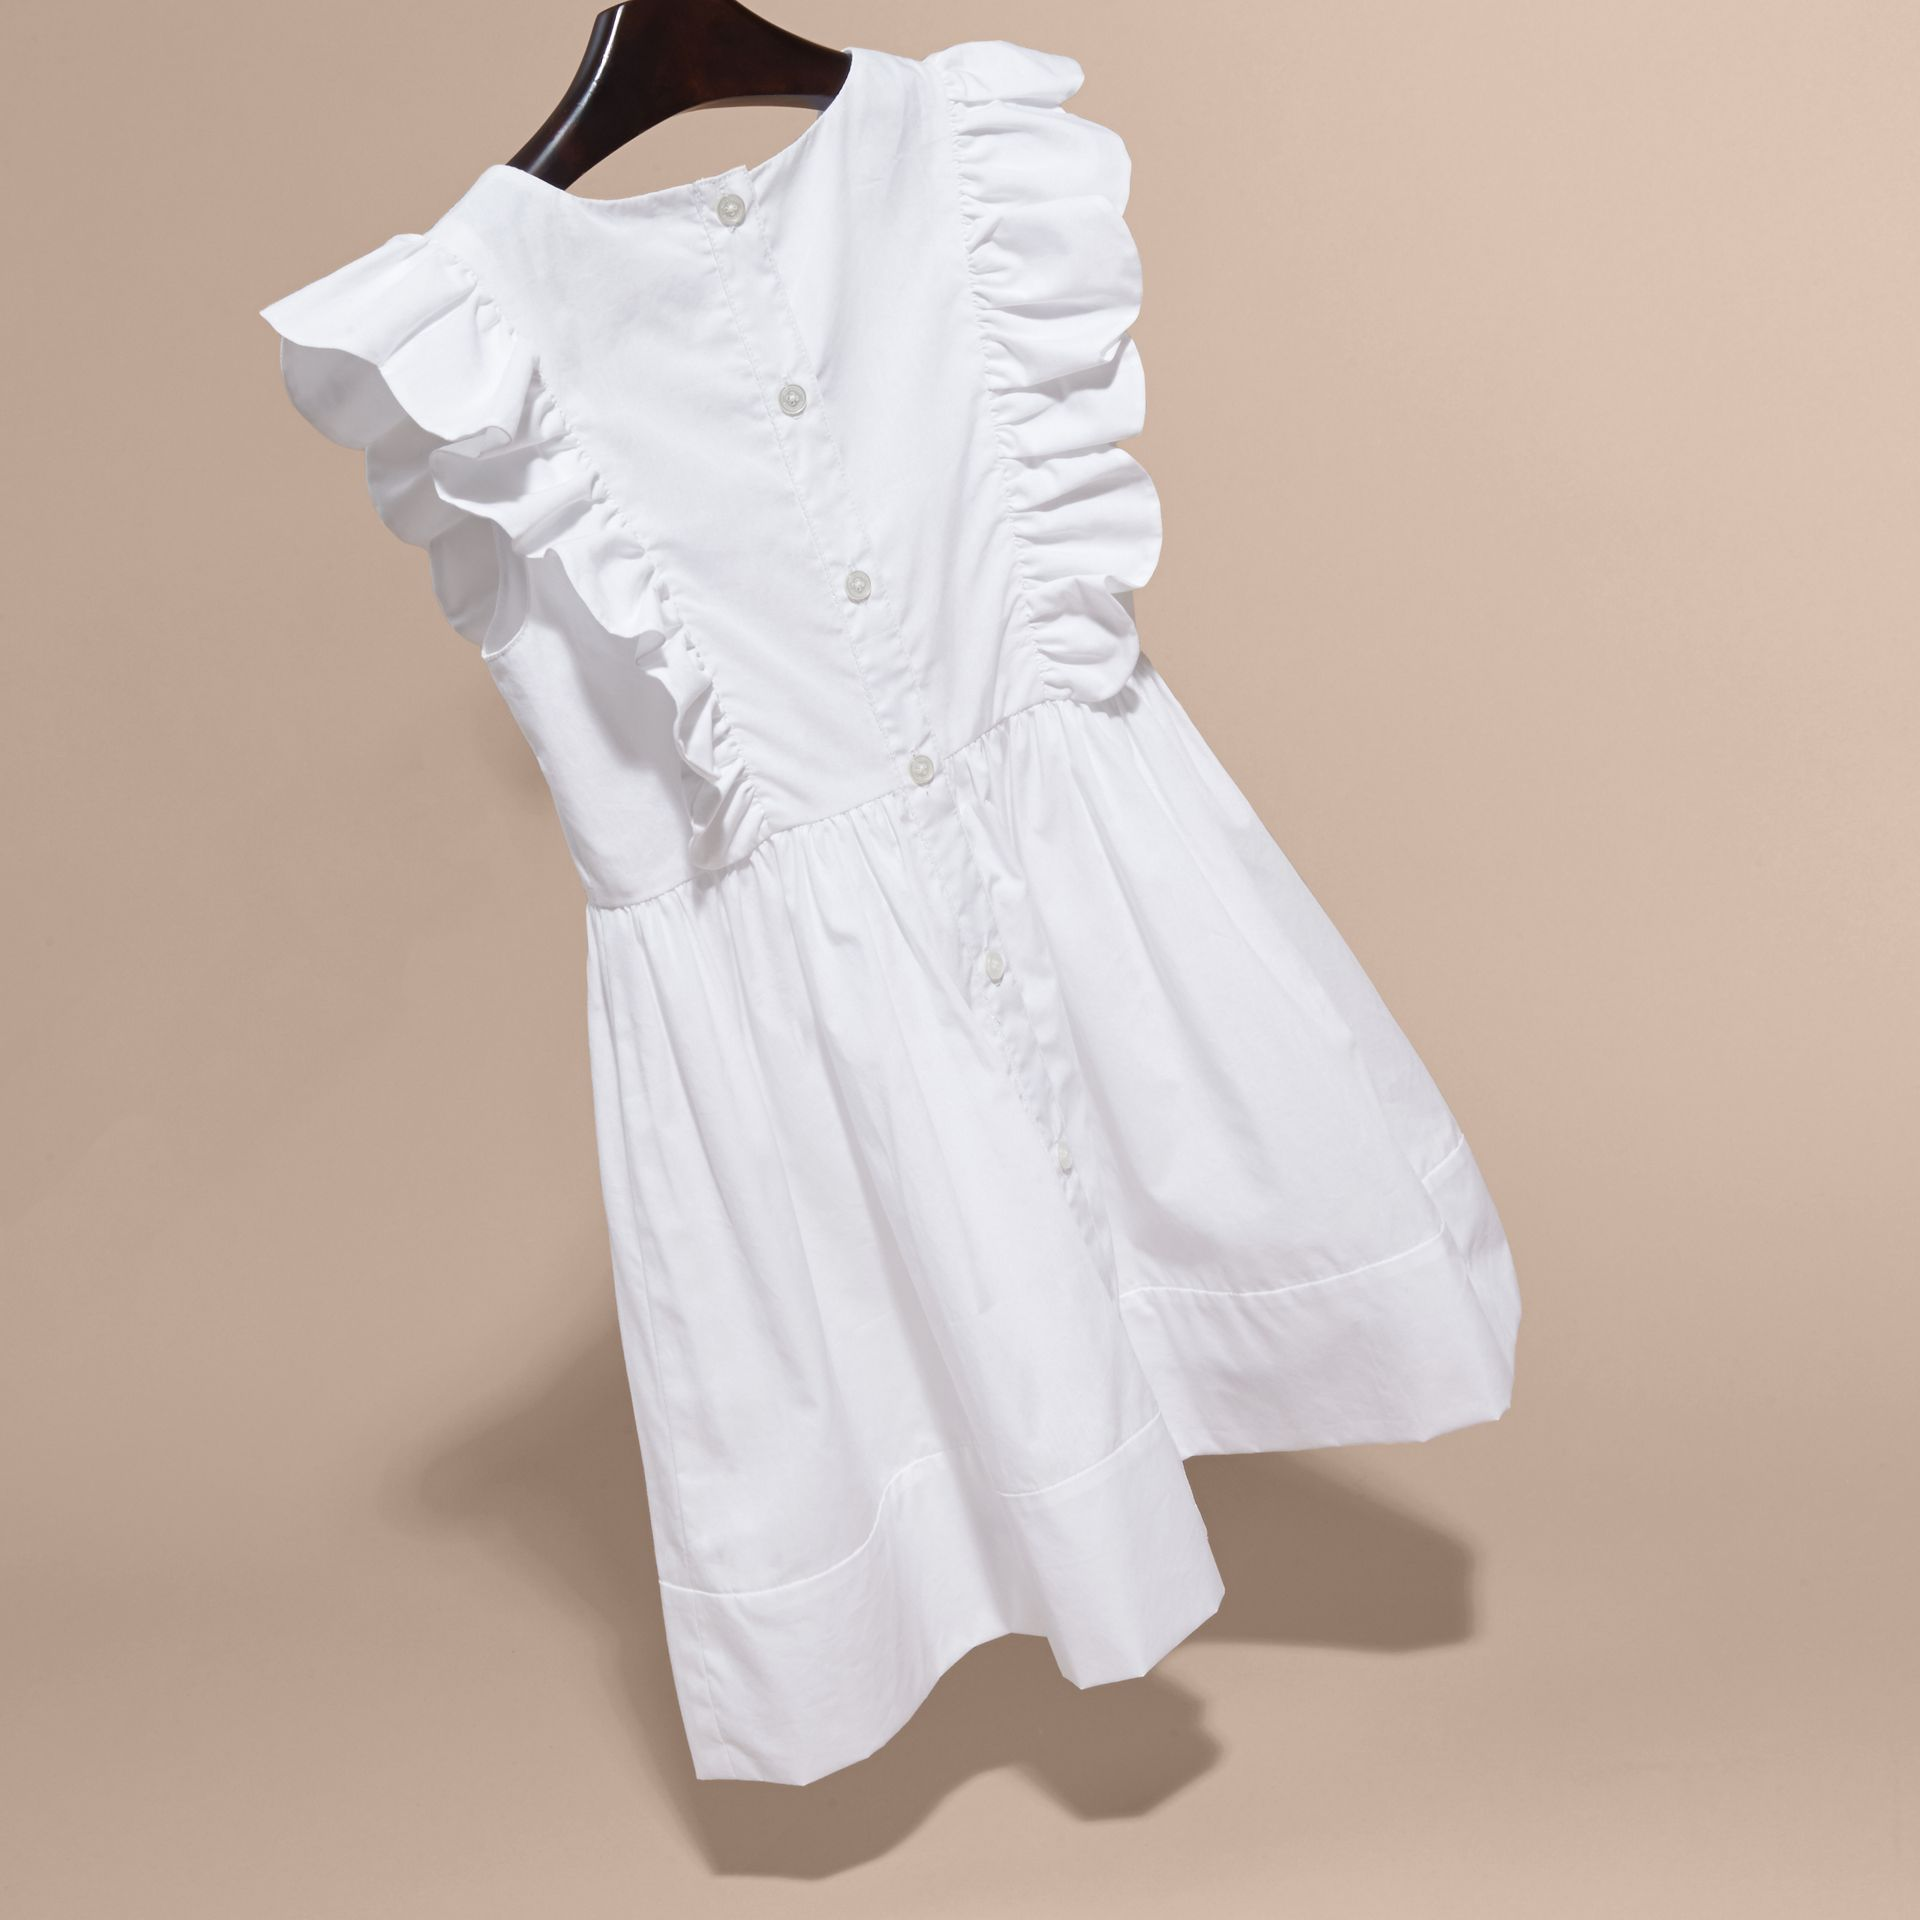 Ruffle and Pleat Detail Cotton Dress in White | Burberry Hong Kong - gallery image 4